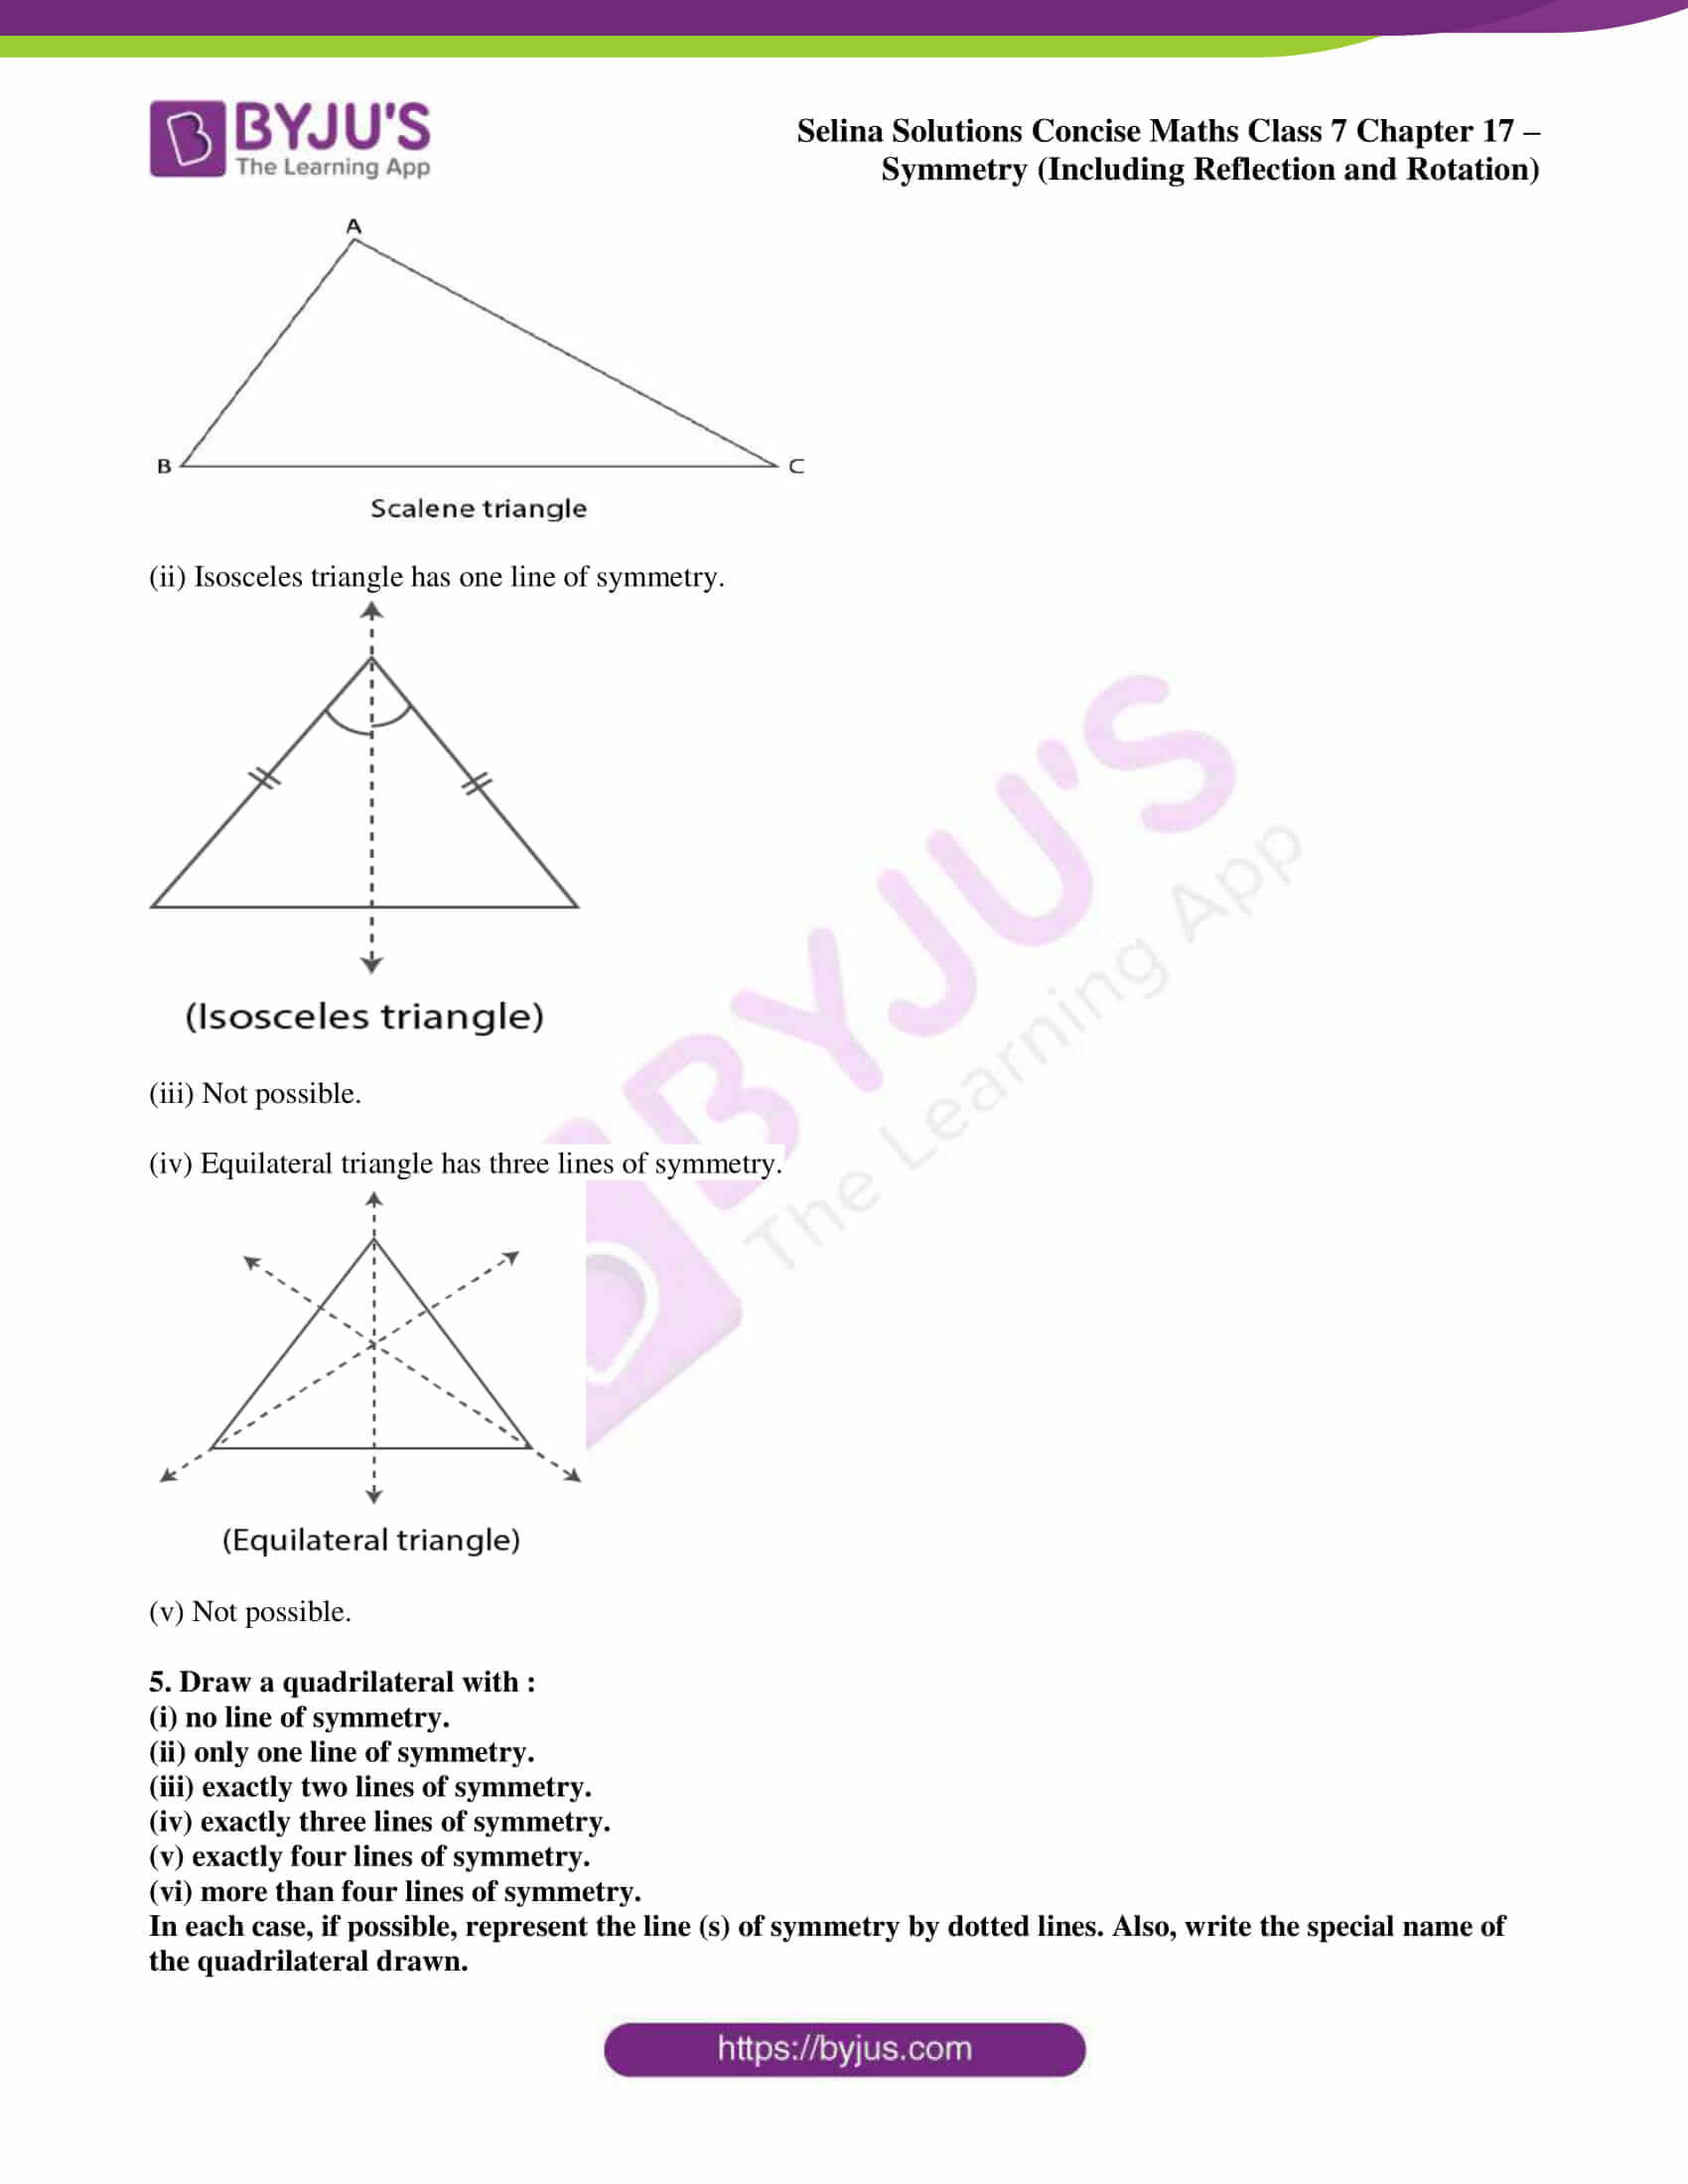 selina sol concise maths class 7 chapter 17 ex a 4